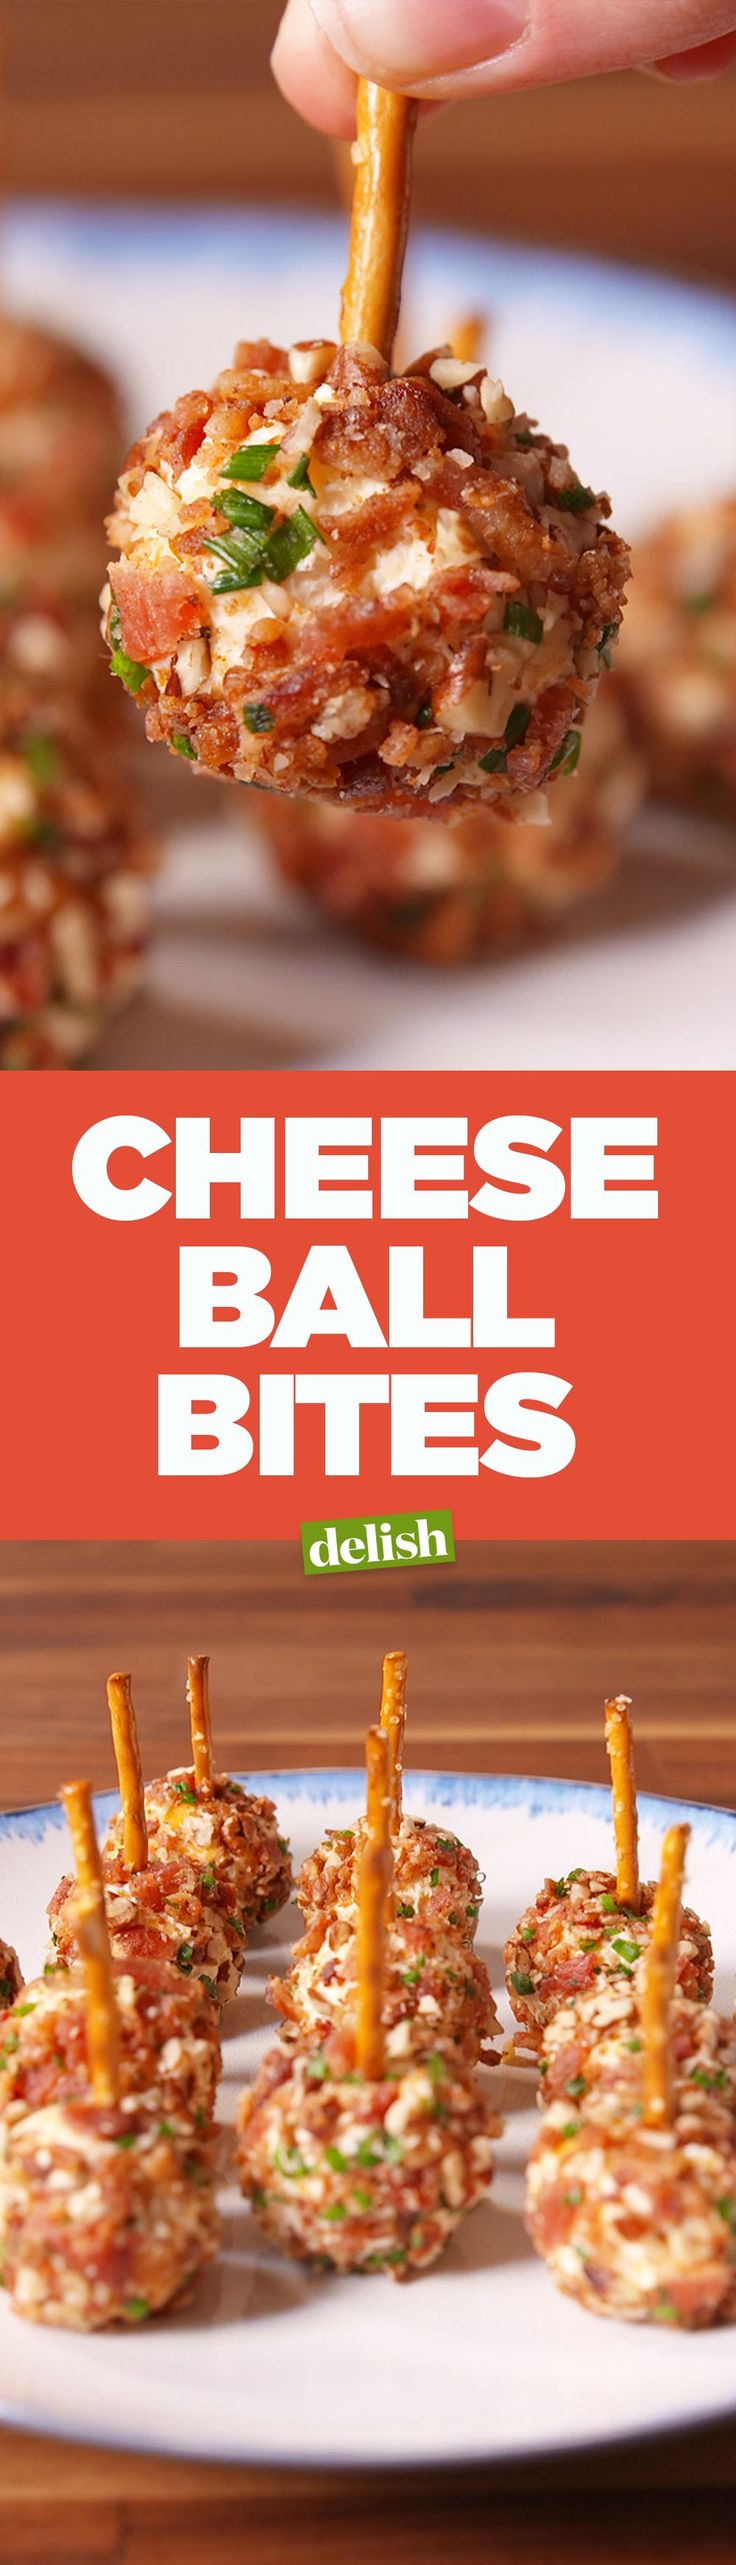 Appetizer Ideas For Christmas Party Part - 15: These Cheese Ball Bites U003e A Boring Cheese Platter. Get The Recipe On Delish.